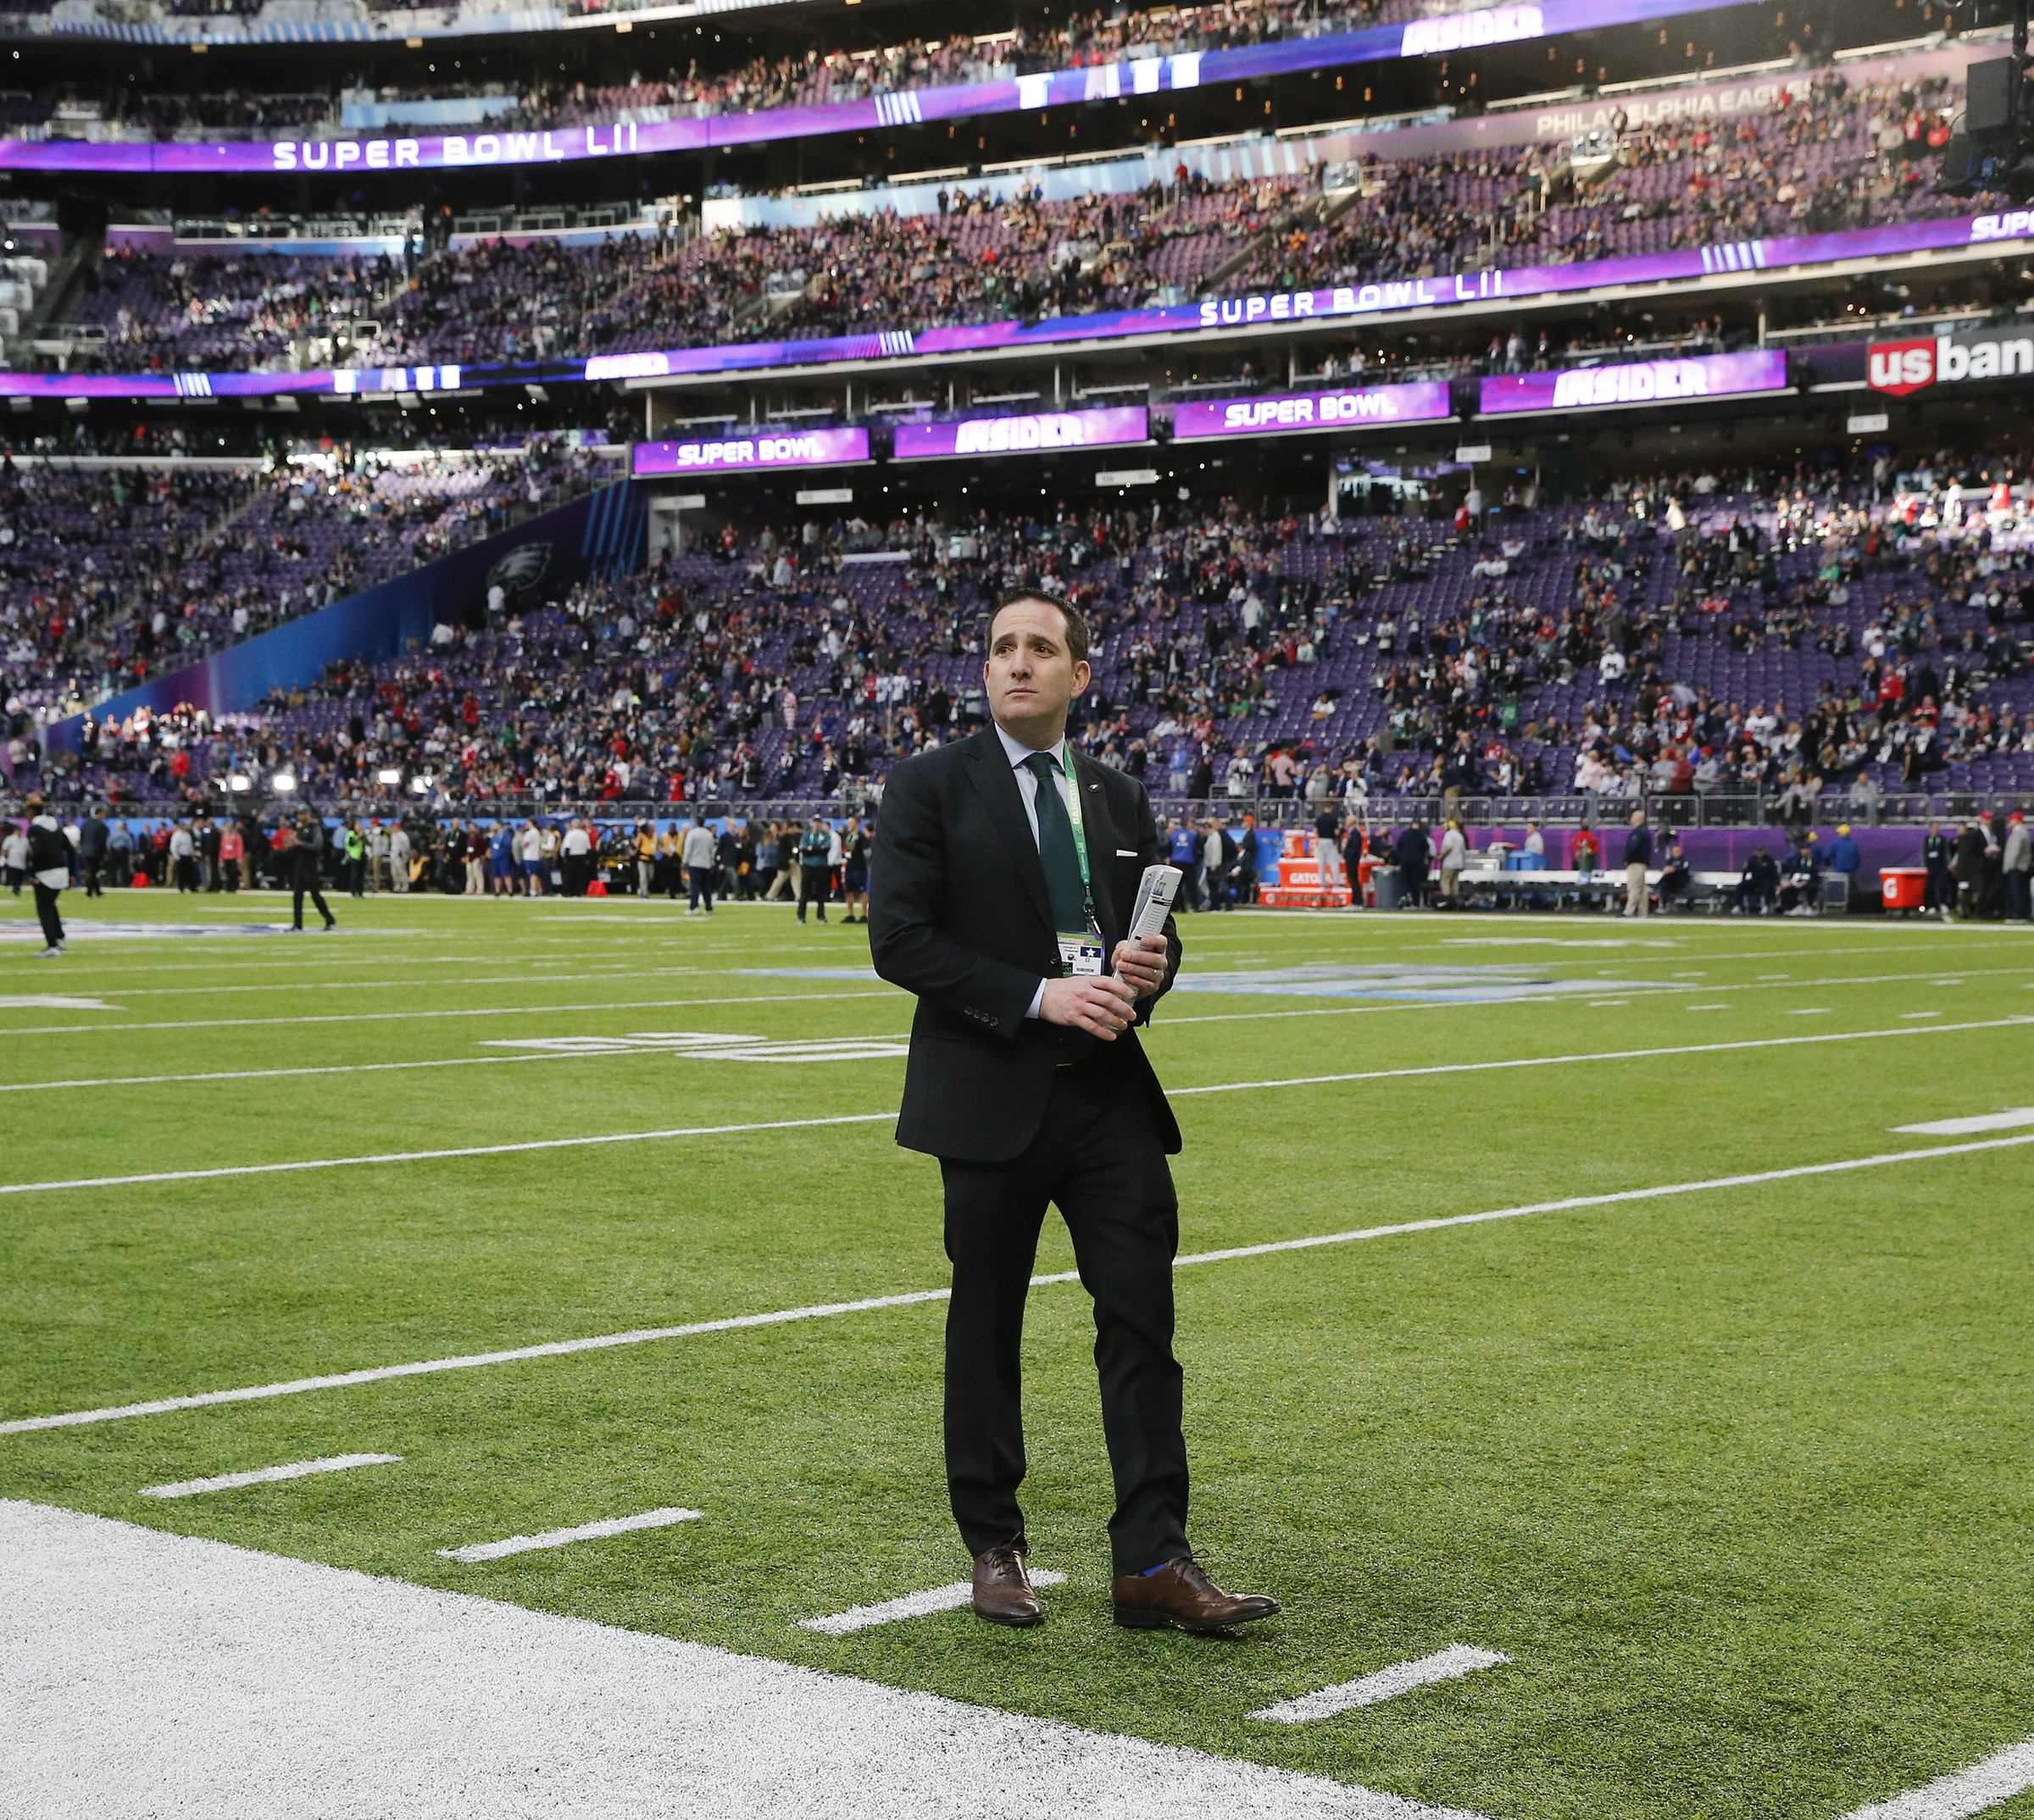 An ahead-of-the-curve approach by Eagles executive vice president Howie Roseman helped the team win its first Super Bowl.